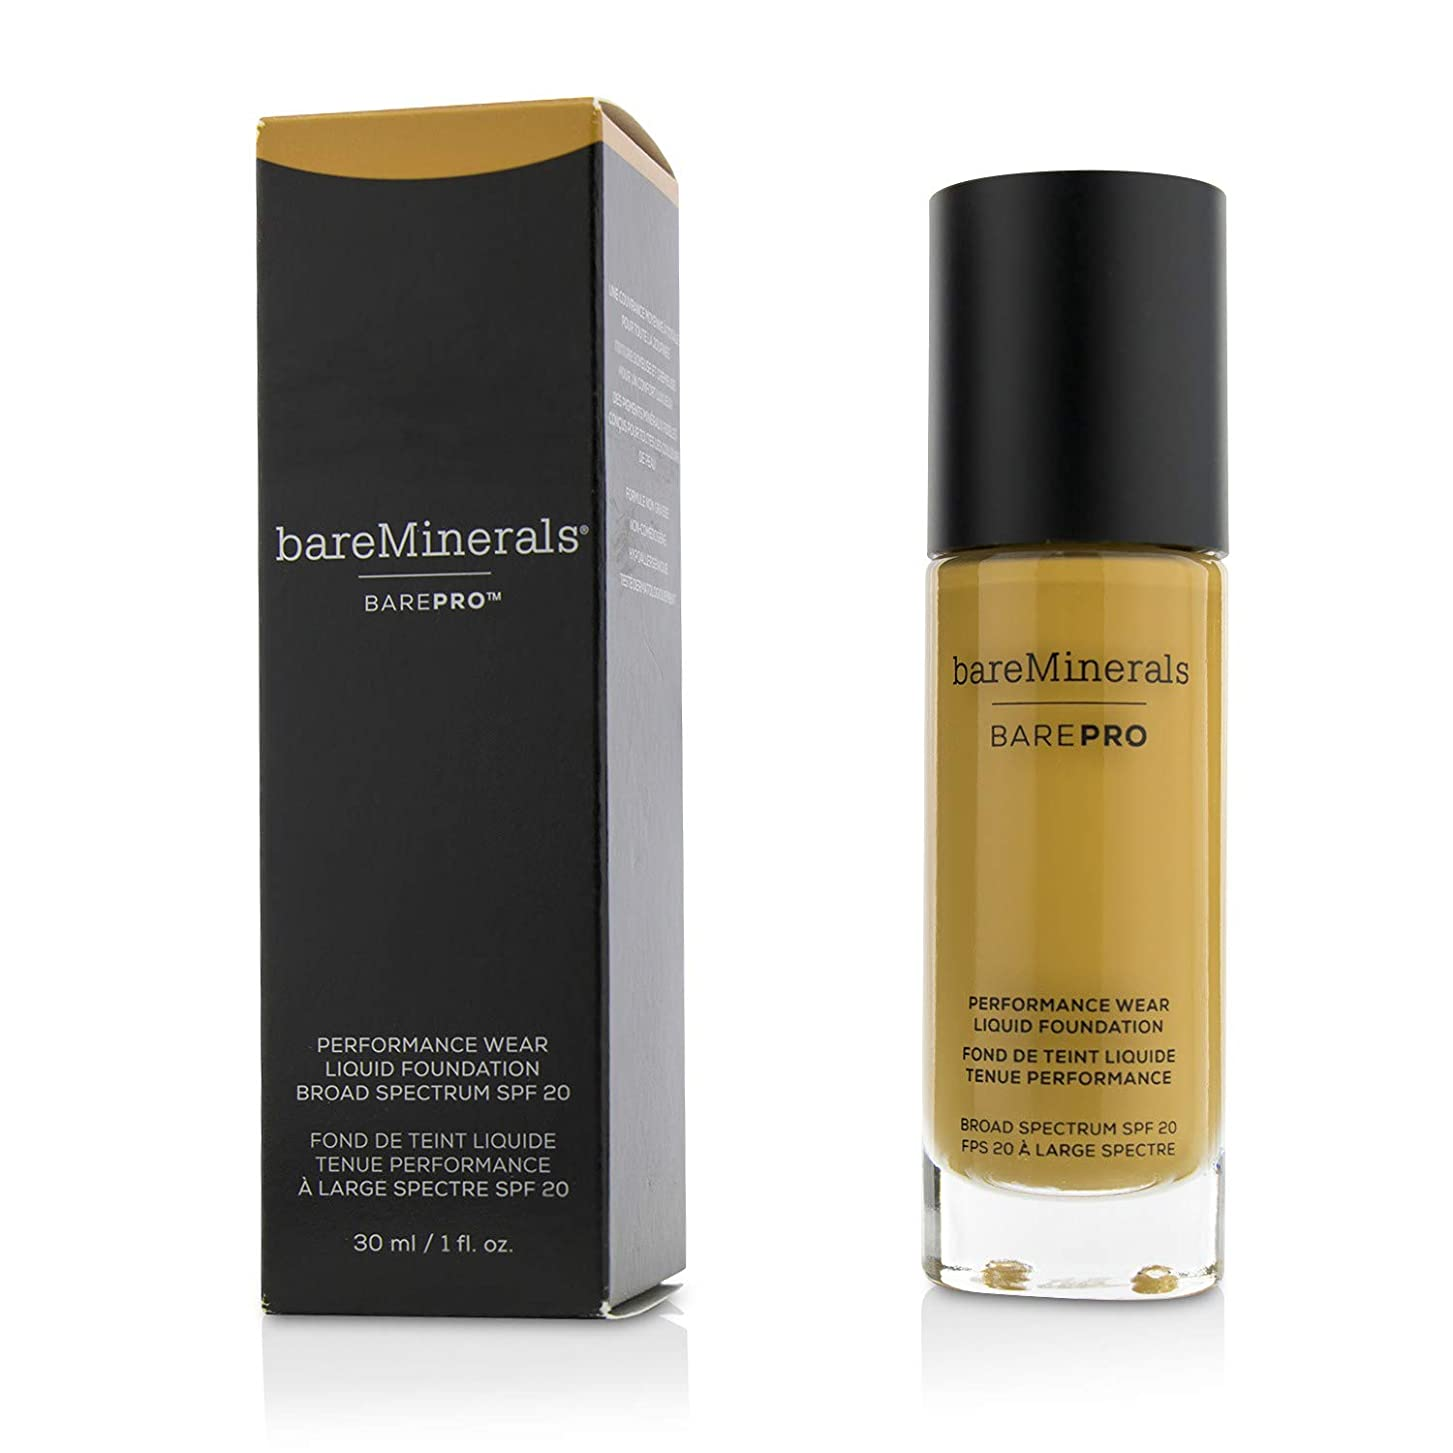 離れた支給ヒップベアミネラル BarePro Performance Wear Liquid Foundation SPF20 - # 21 Sable 30ml/1oz並行輸入品